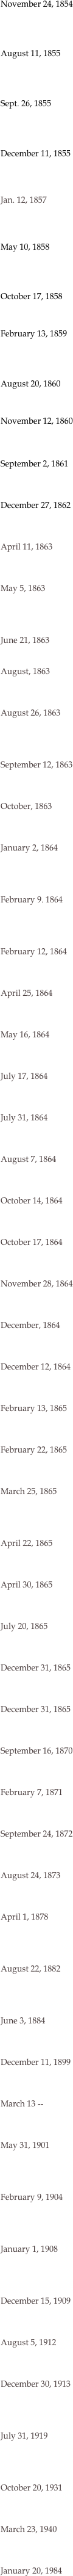 November 24, 1854